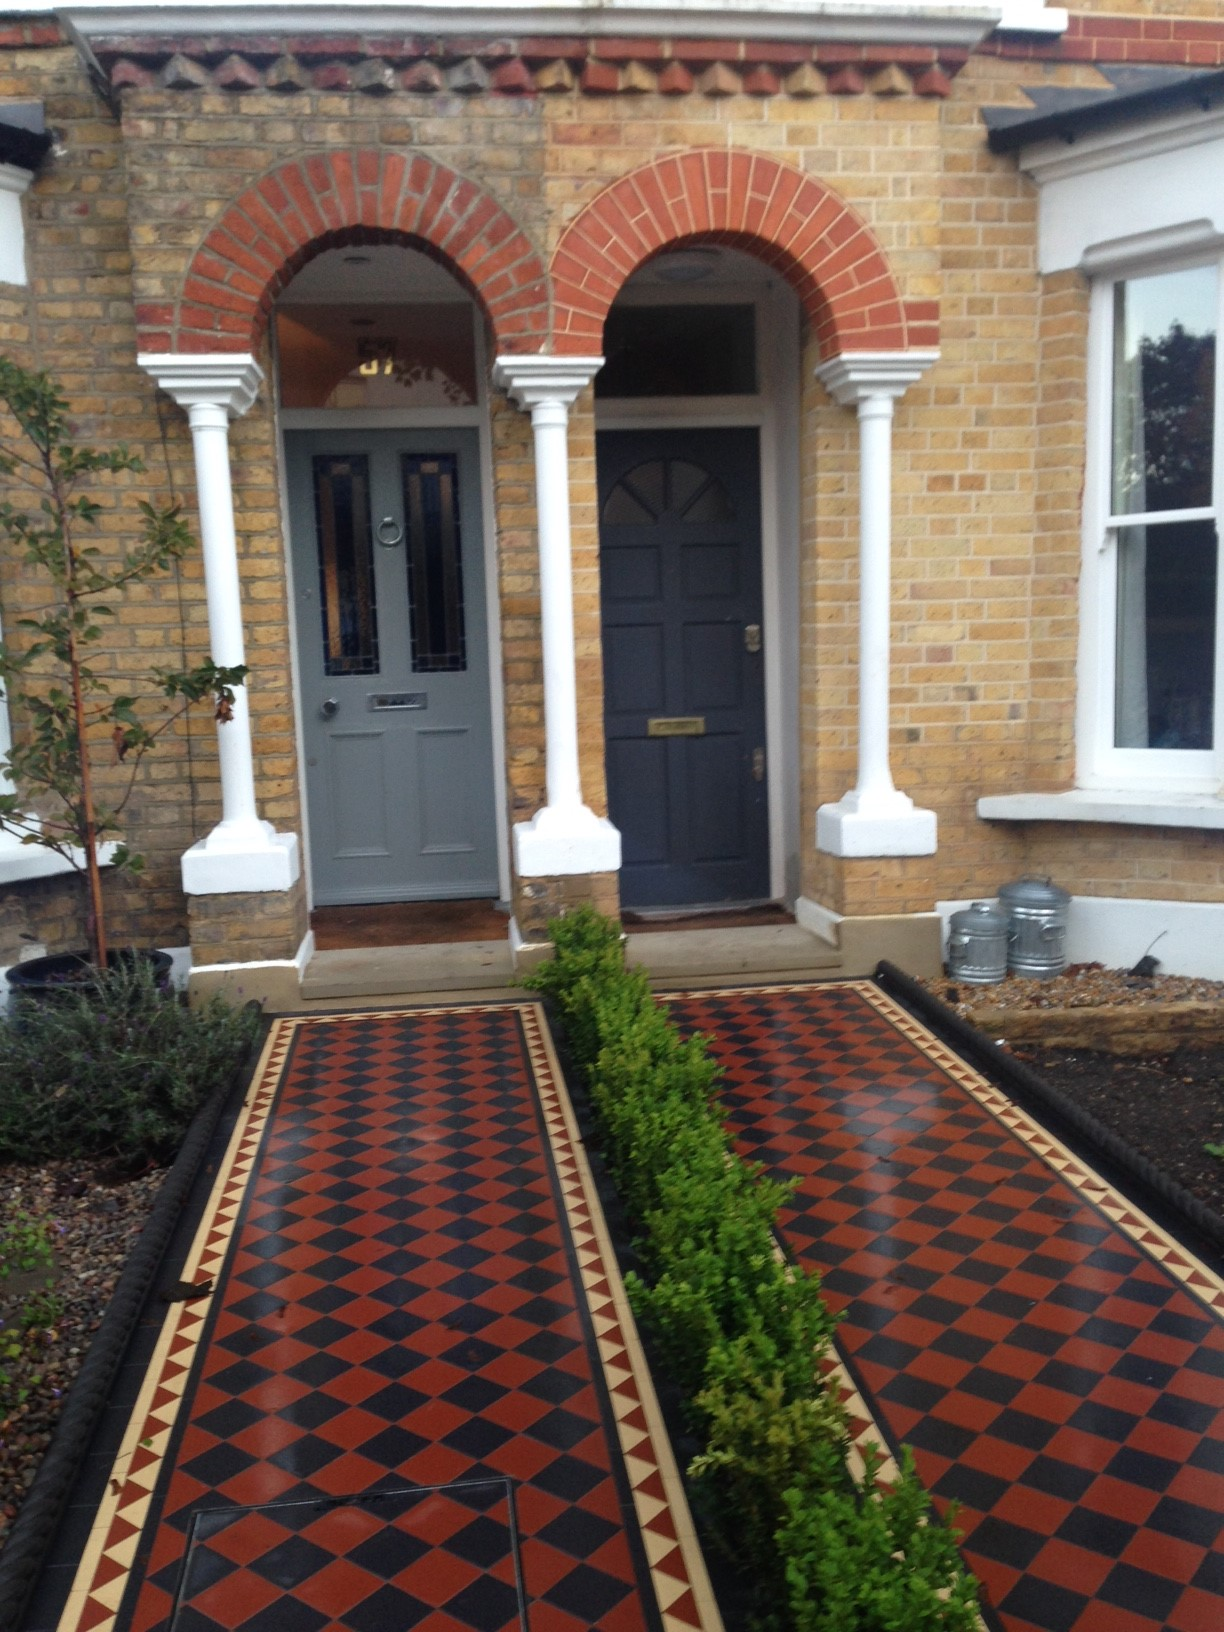 Brixton Herne Hill Victorian Mosaic Tile Path black and red tile with Yorkstone pier cap entrance stone and imperial yellow brick london stock wall (10)